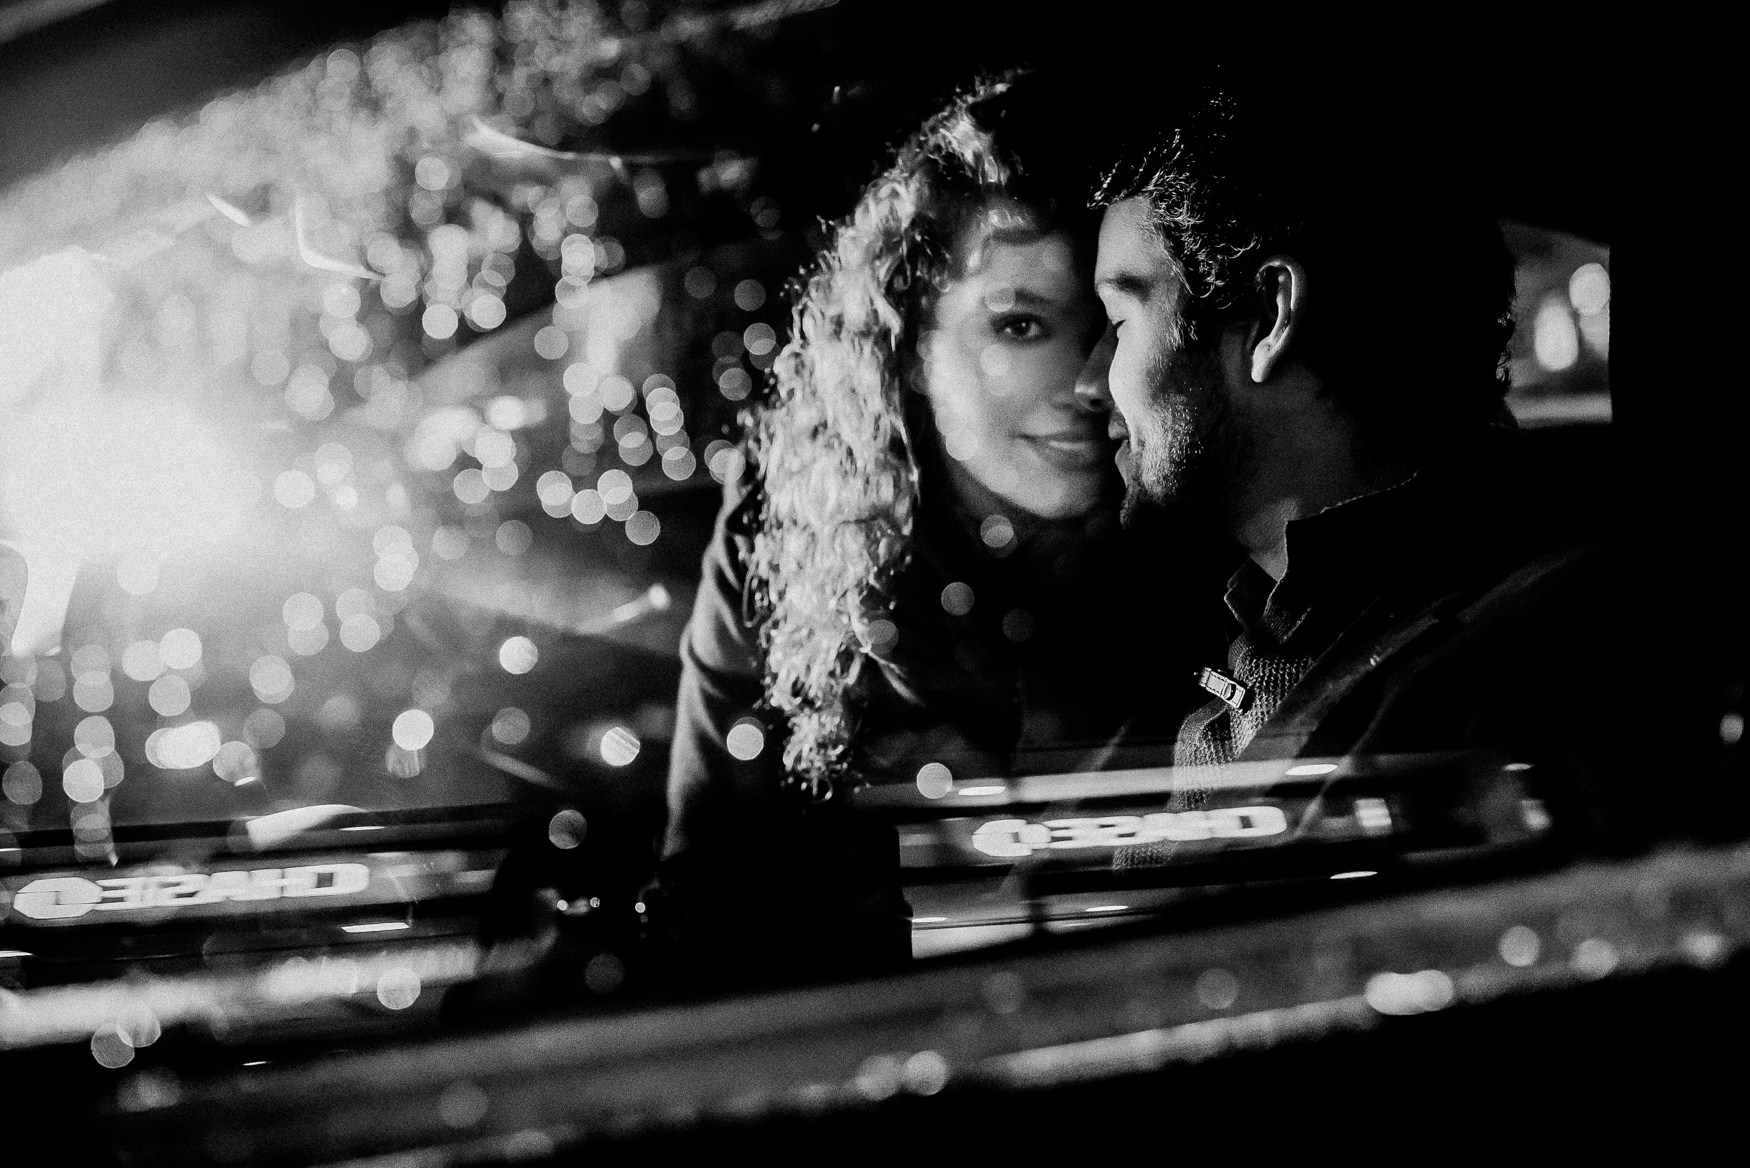 nyc winter snowy manthattan engagement session 042.jpg